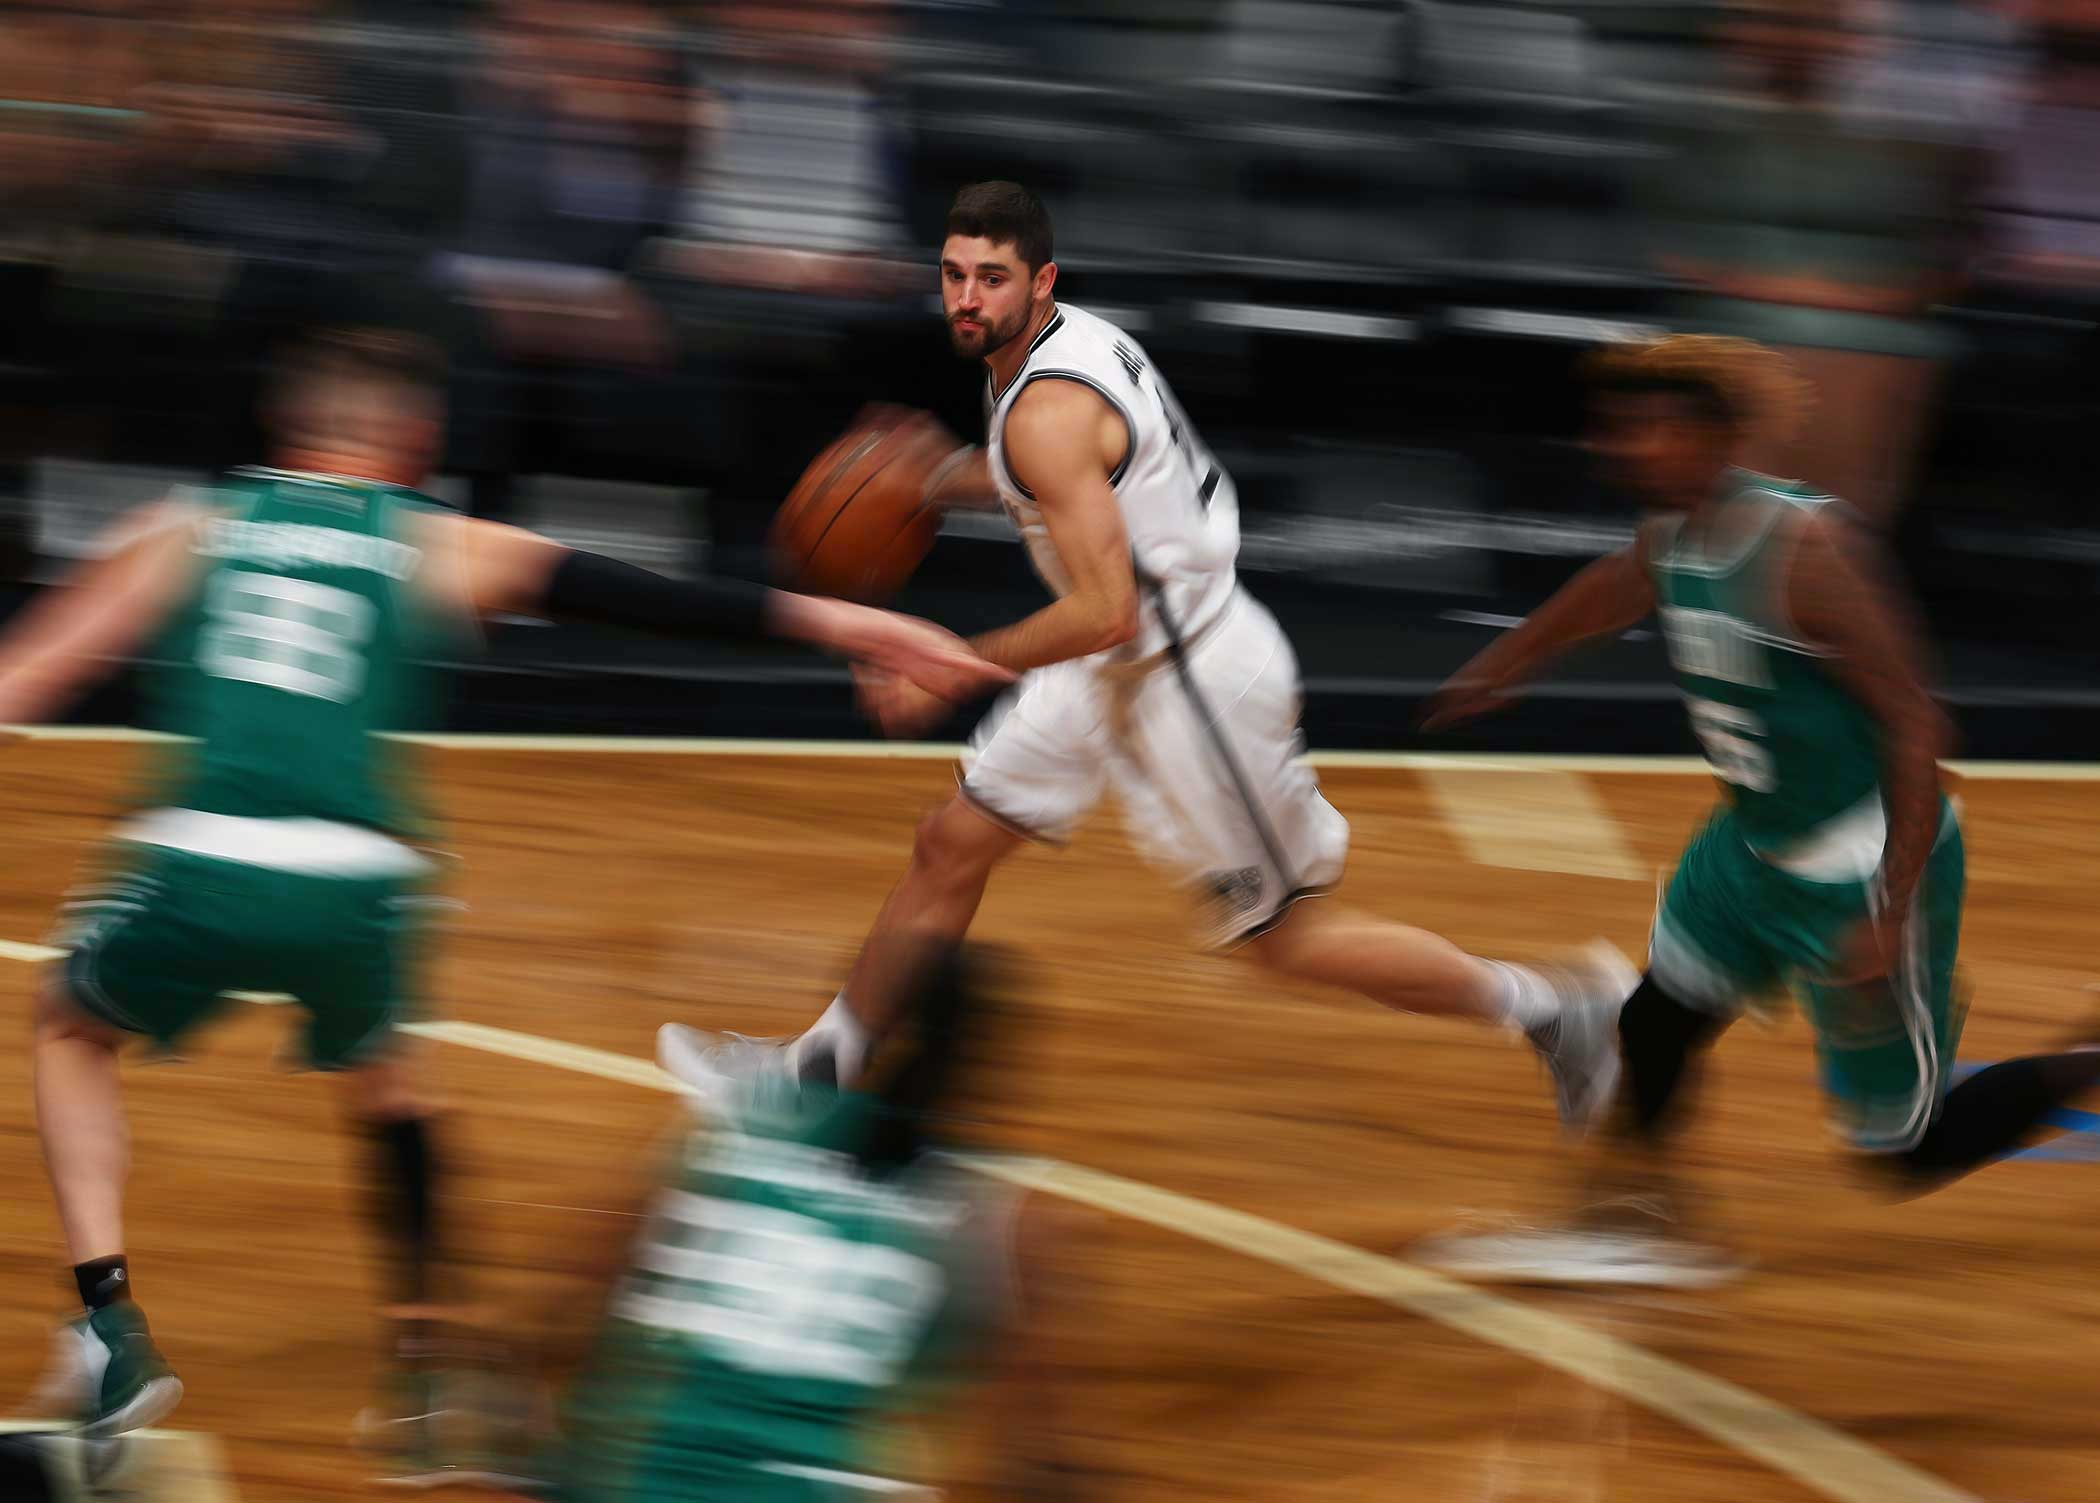 Greivis Vasquez of the Brooklyn Nets dribbles the ball against the Boston Celtics during their Pre Season game at the Barclays Center on Oct. 13.